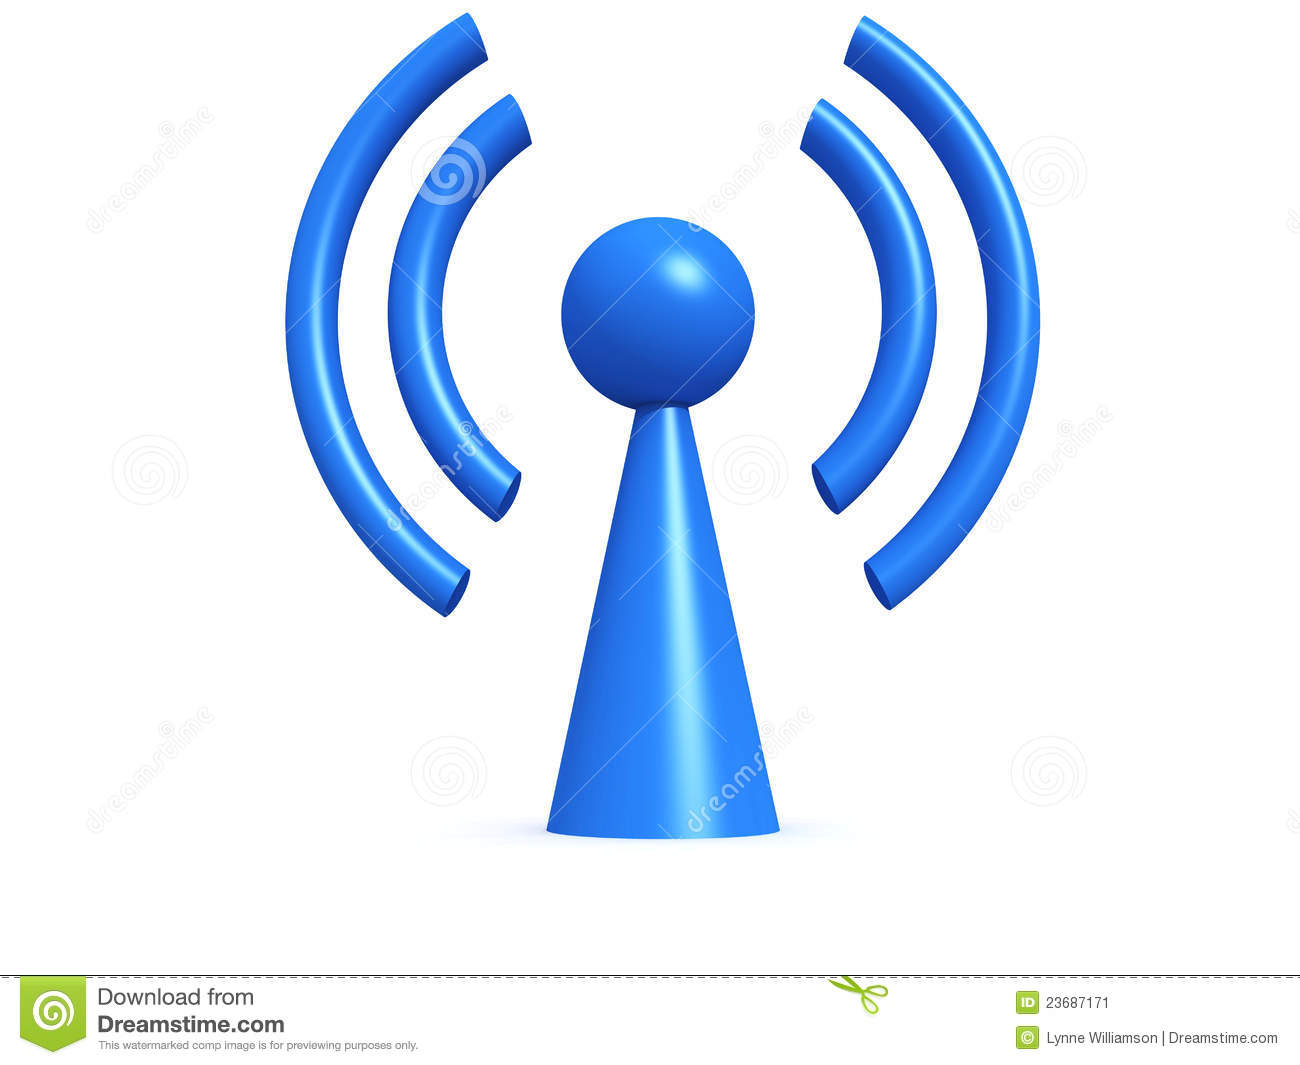 Wireless Symbol Stock Image - Image: 23687171